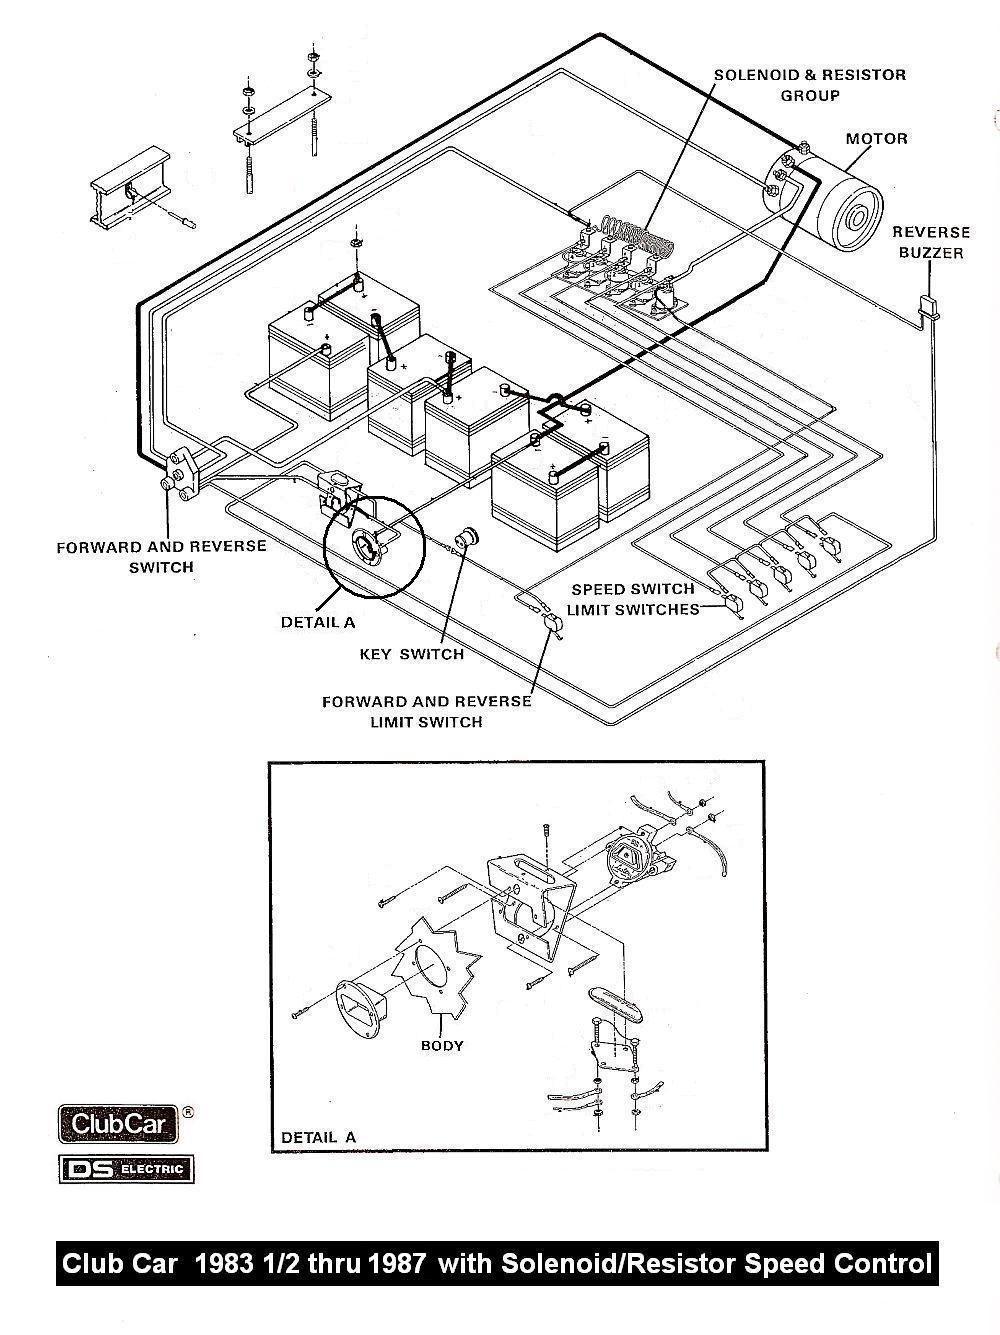 0e8d045370be7682b159825224221faa vintagegolfcartparts com *freezer & crock pot* pinterest gas club car golf cart wiring diagram at readyjetset.co